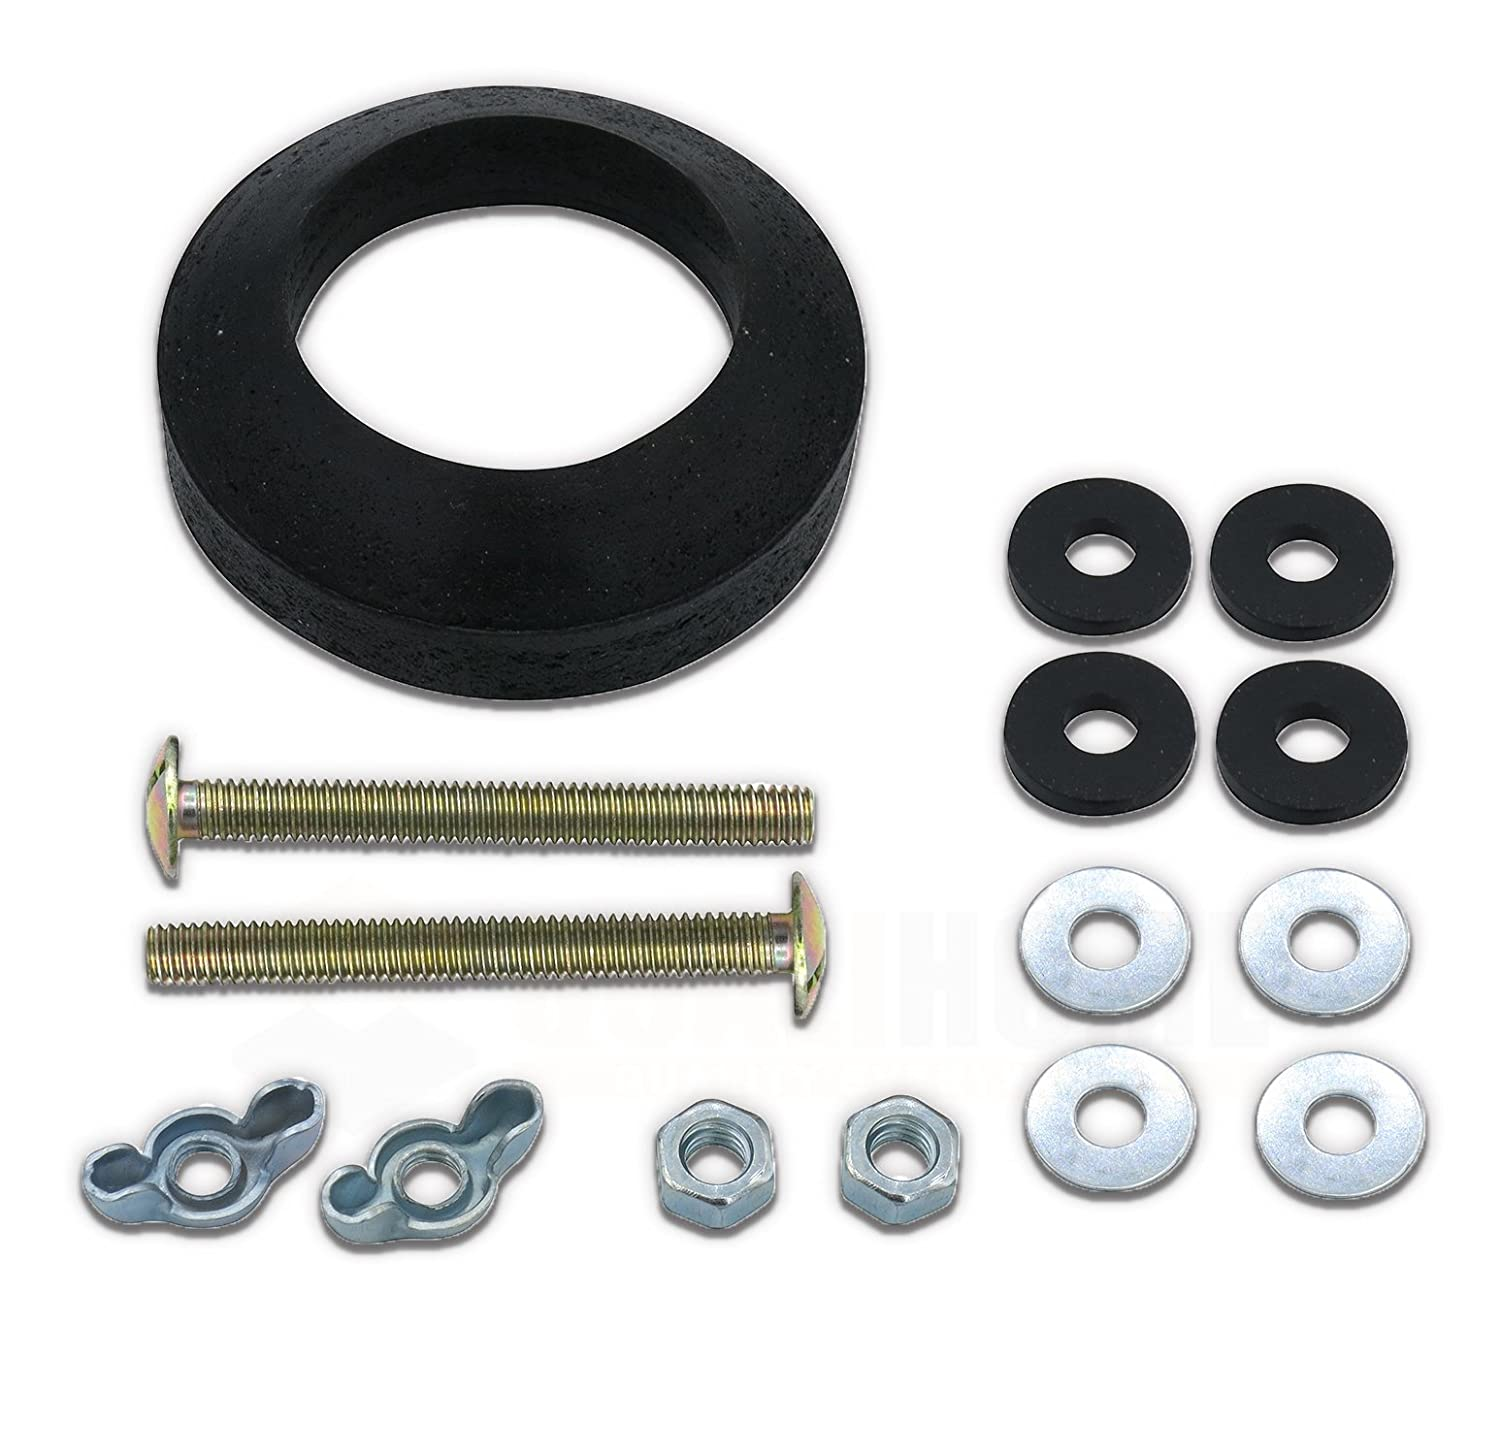 Tank to Bowl Bolts and Gasket Connection Kit for American Standard Qualihome